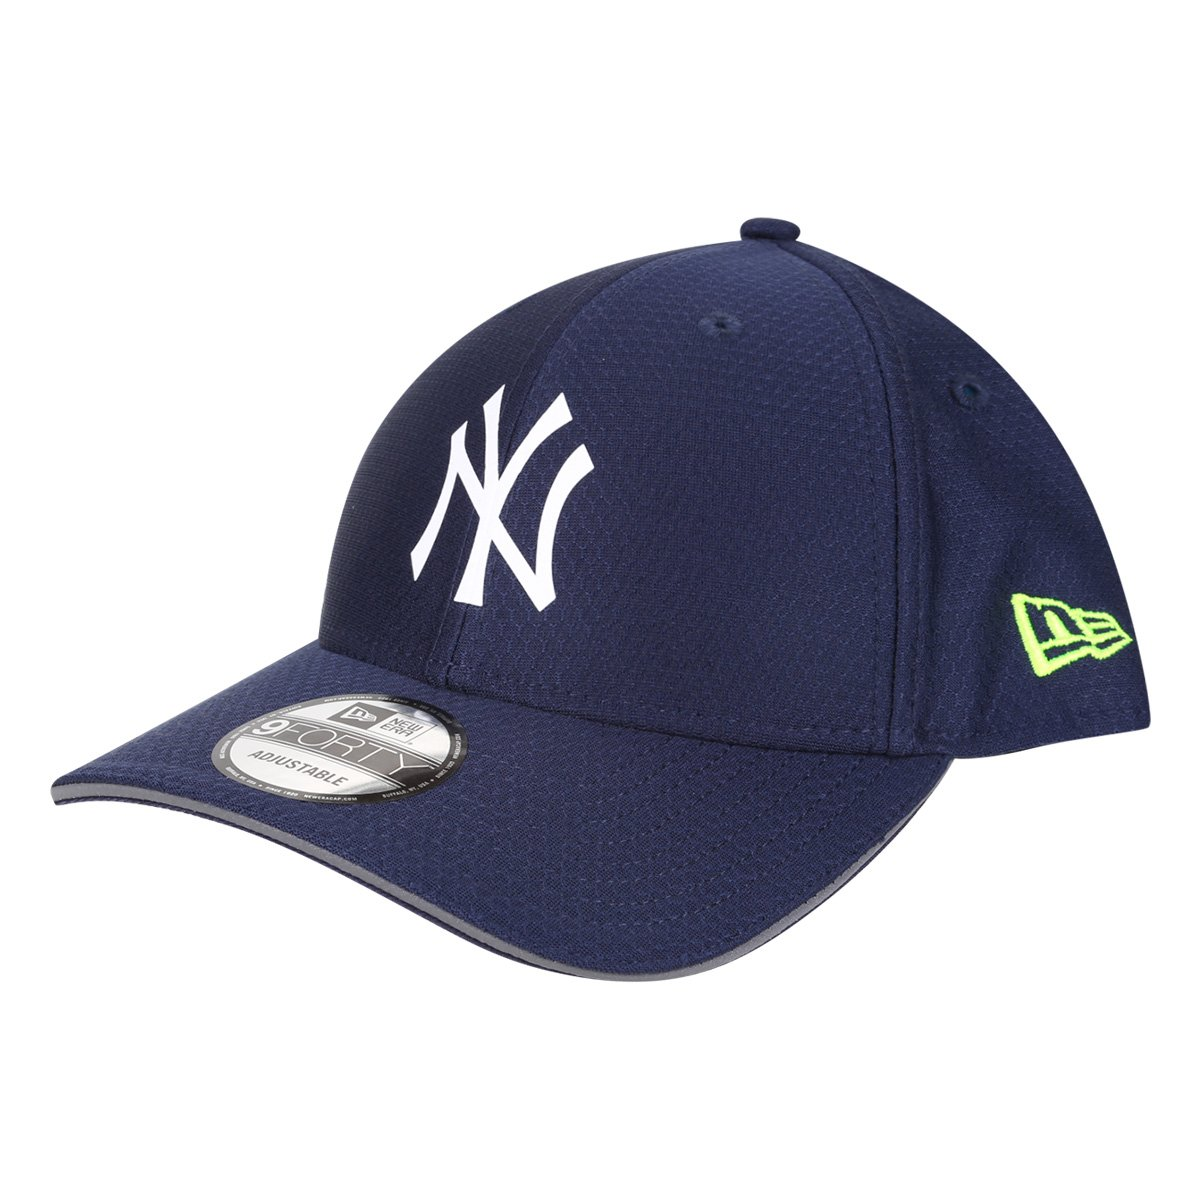 Boné New Era MLB New York Yankees Aba Curva Snapback Urban Tech Reflective Flap 9Forty